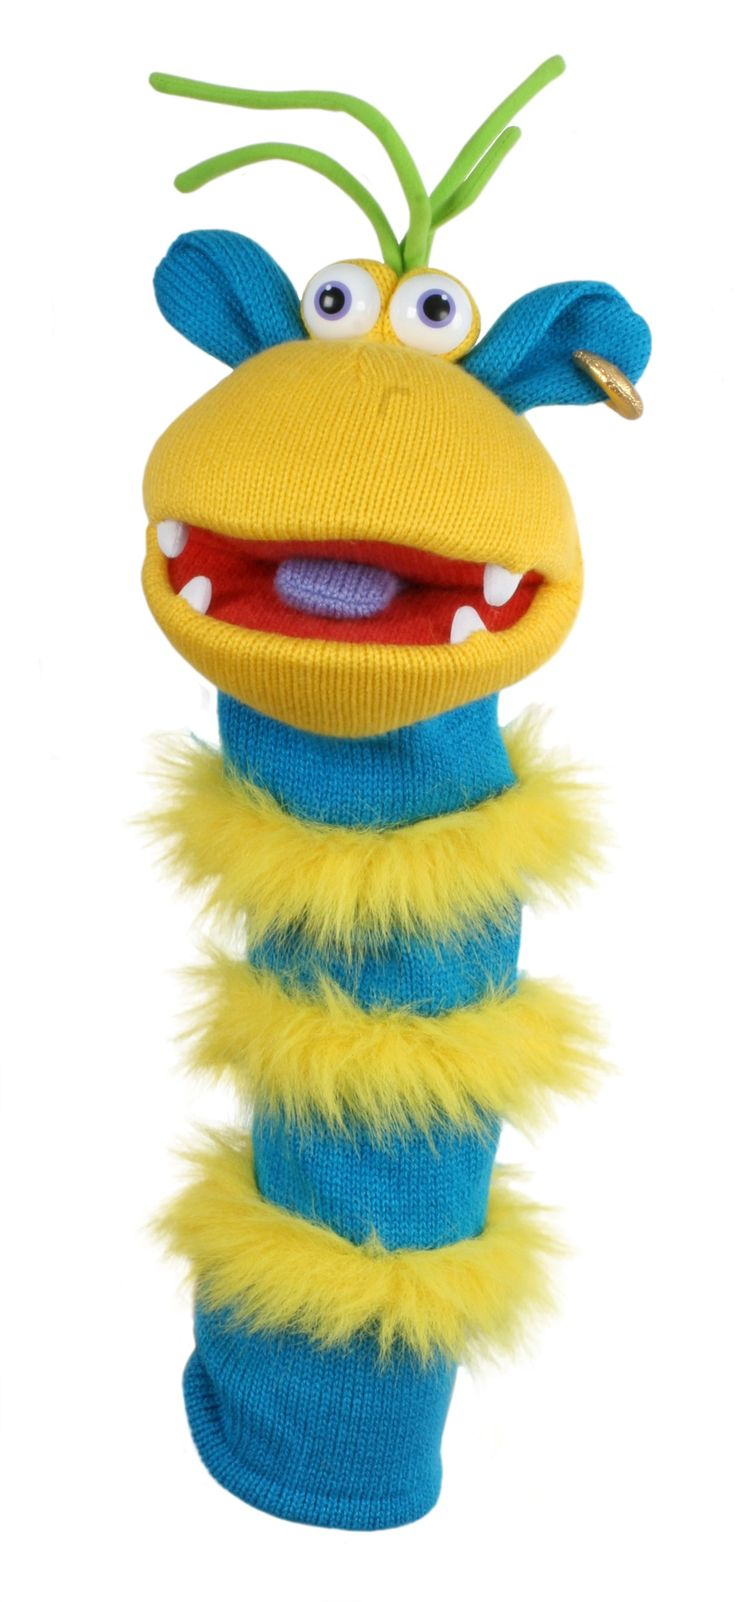 Sock puppet - RINGO from the Puppet Company